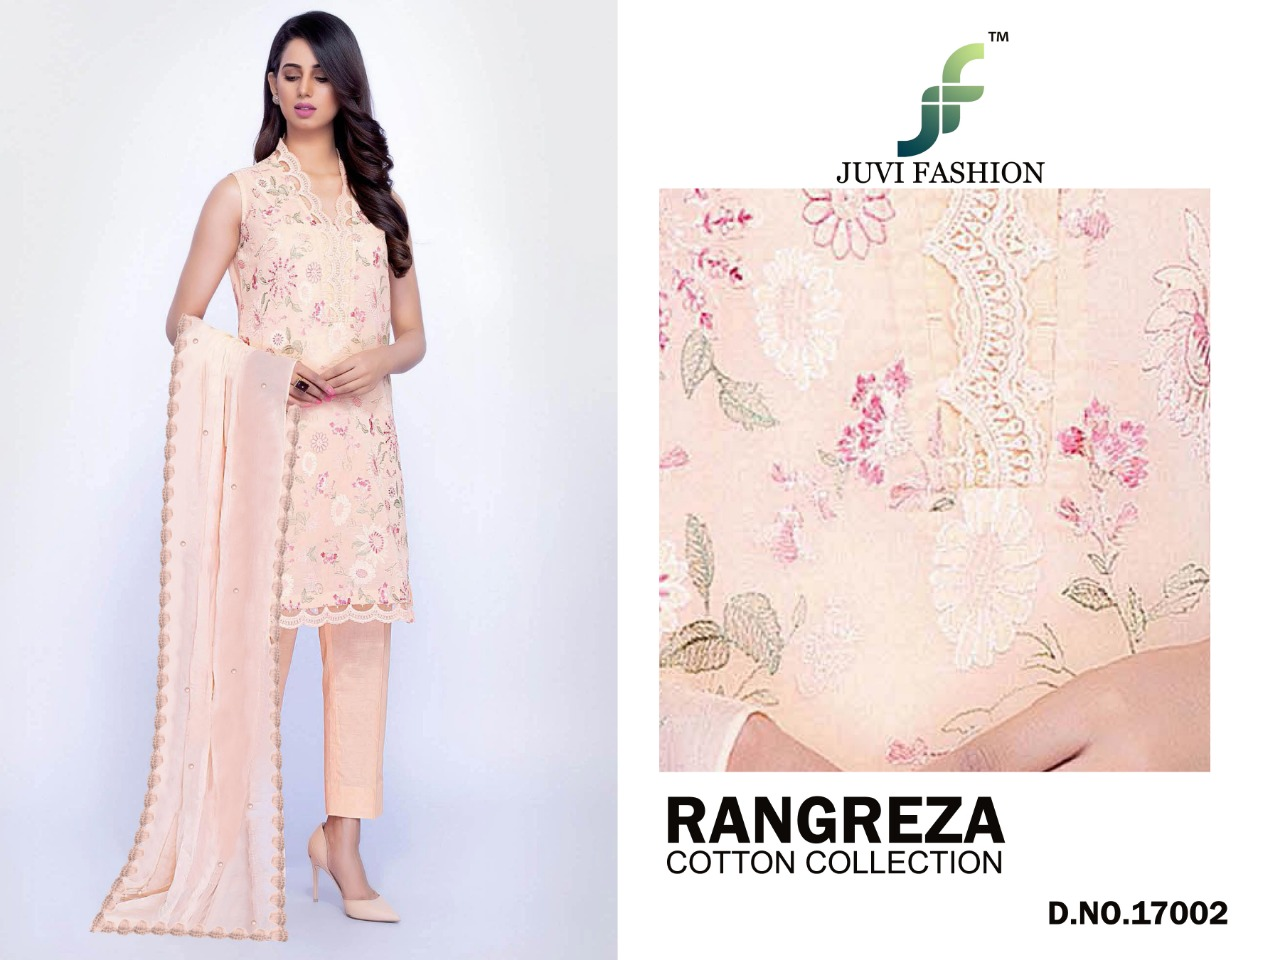 5f2851d9f9 Gosiya Exports » RANGREZA COTTON COLLECTION JUVI FASHION PURE COTTON ...